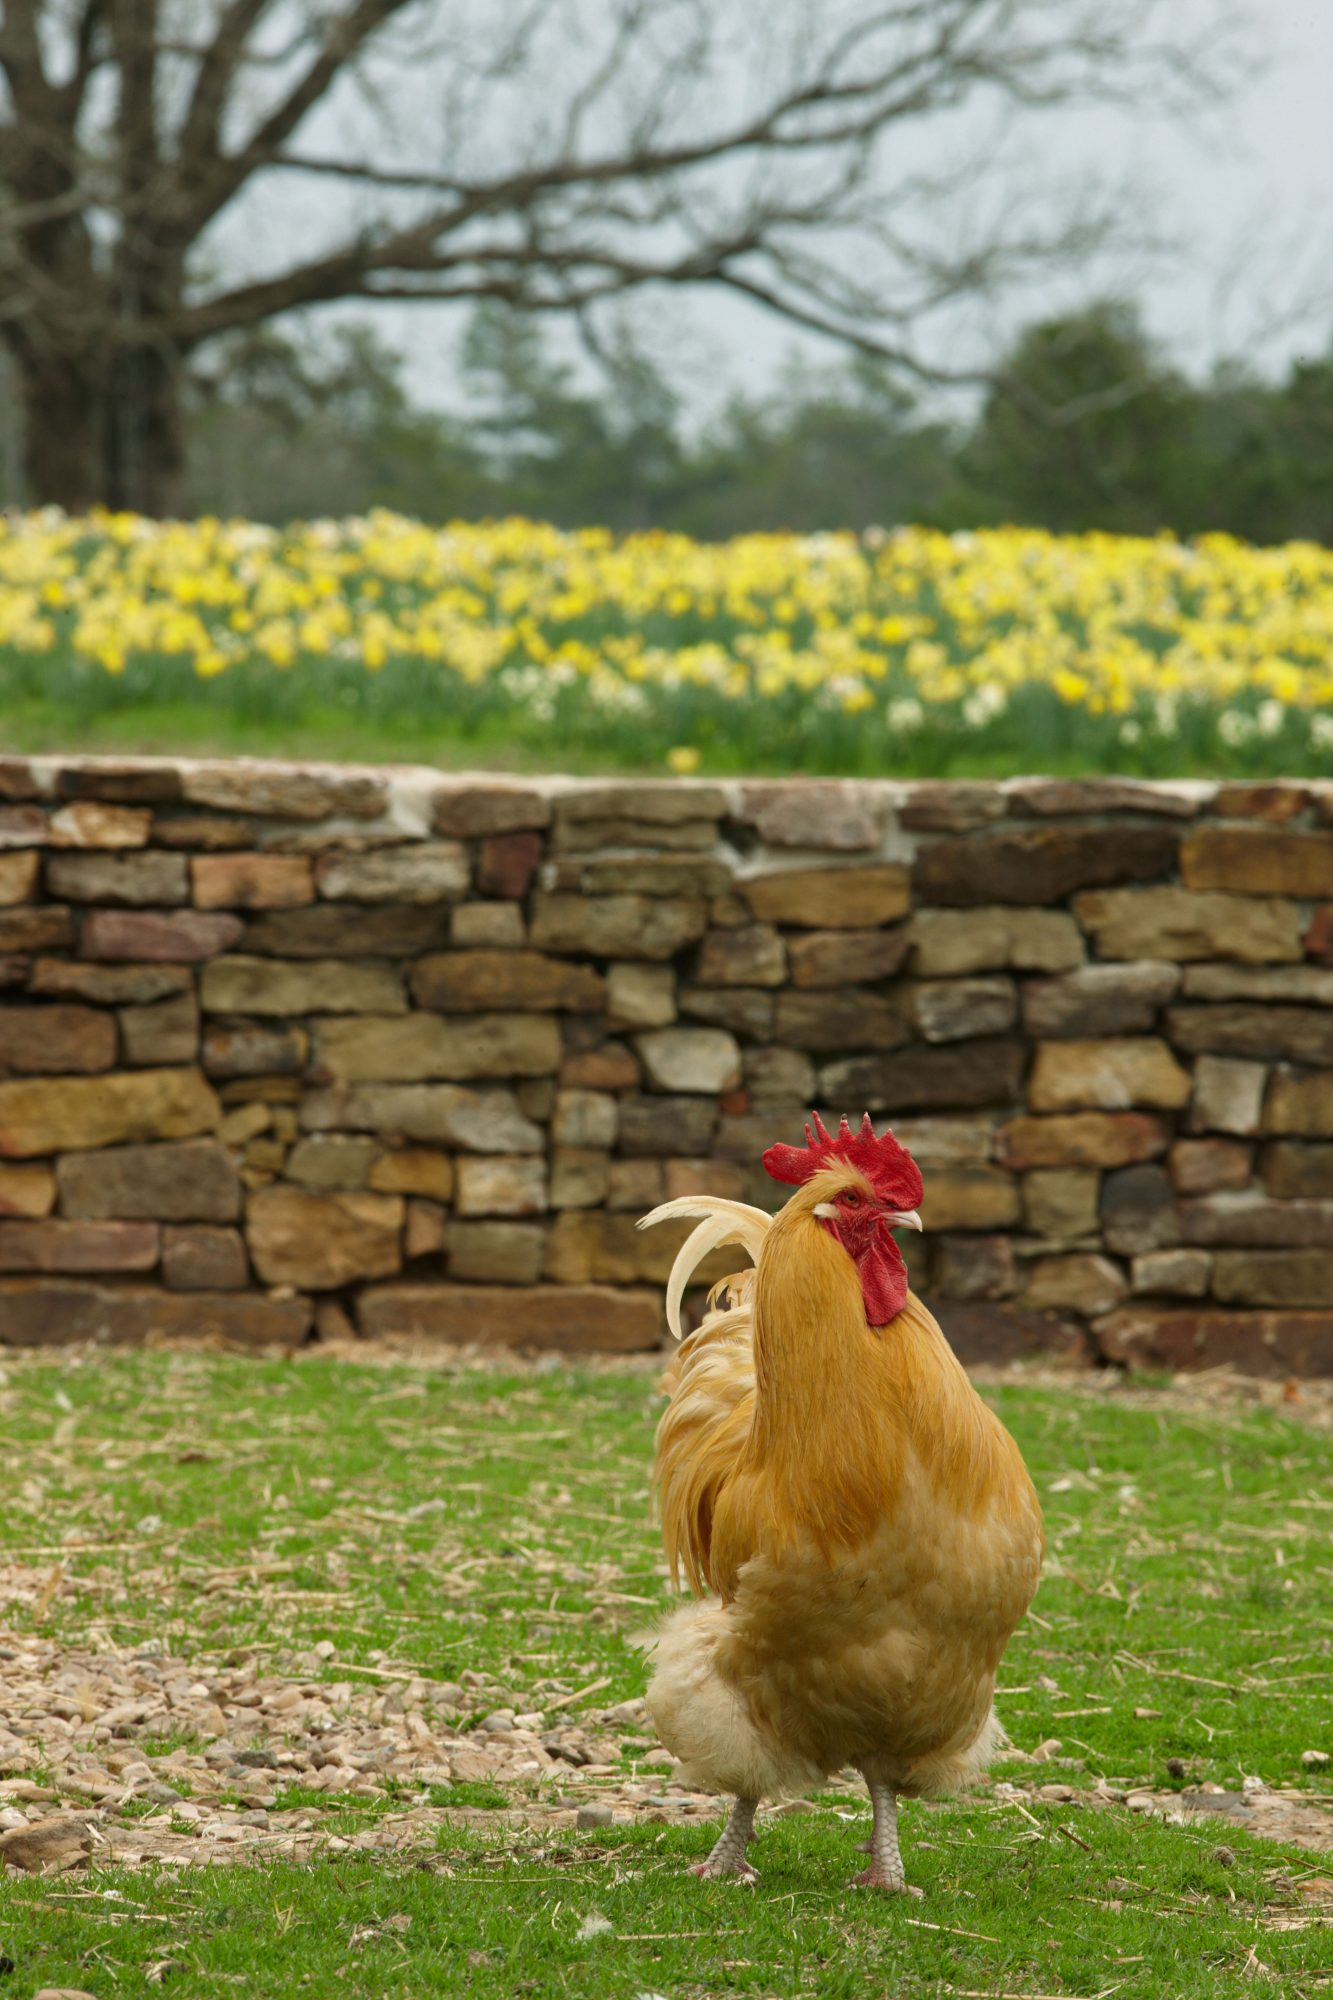 Moss Mountain Farm. Close-up of chicken walking on grass in front of rock wall.